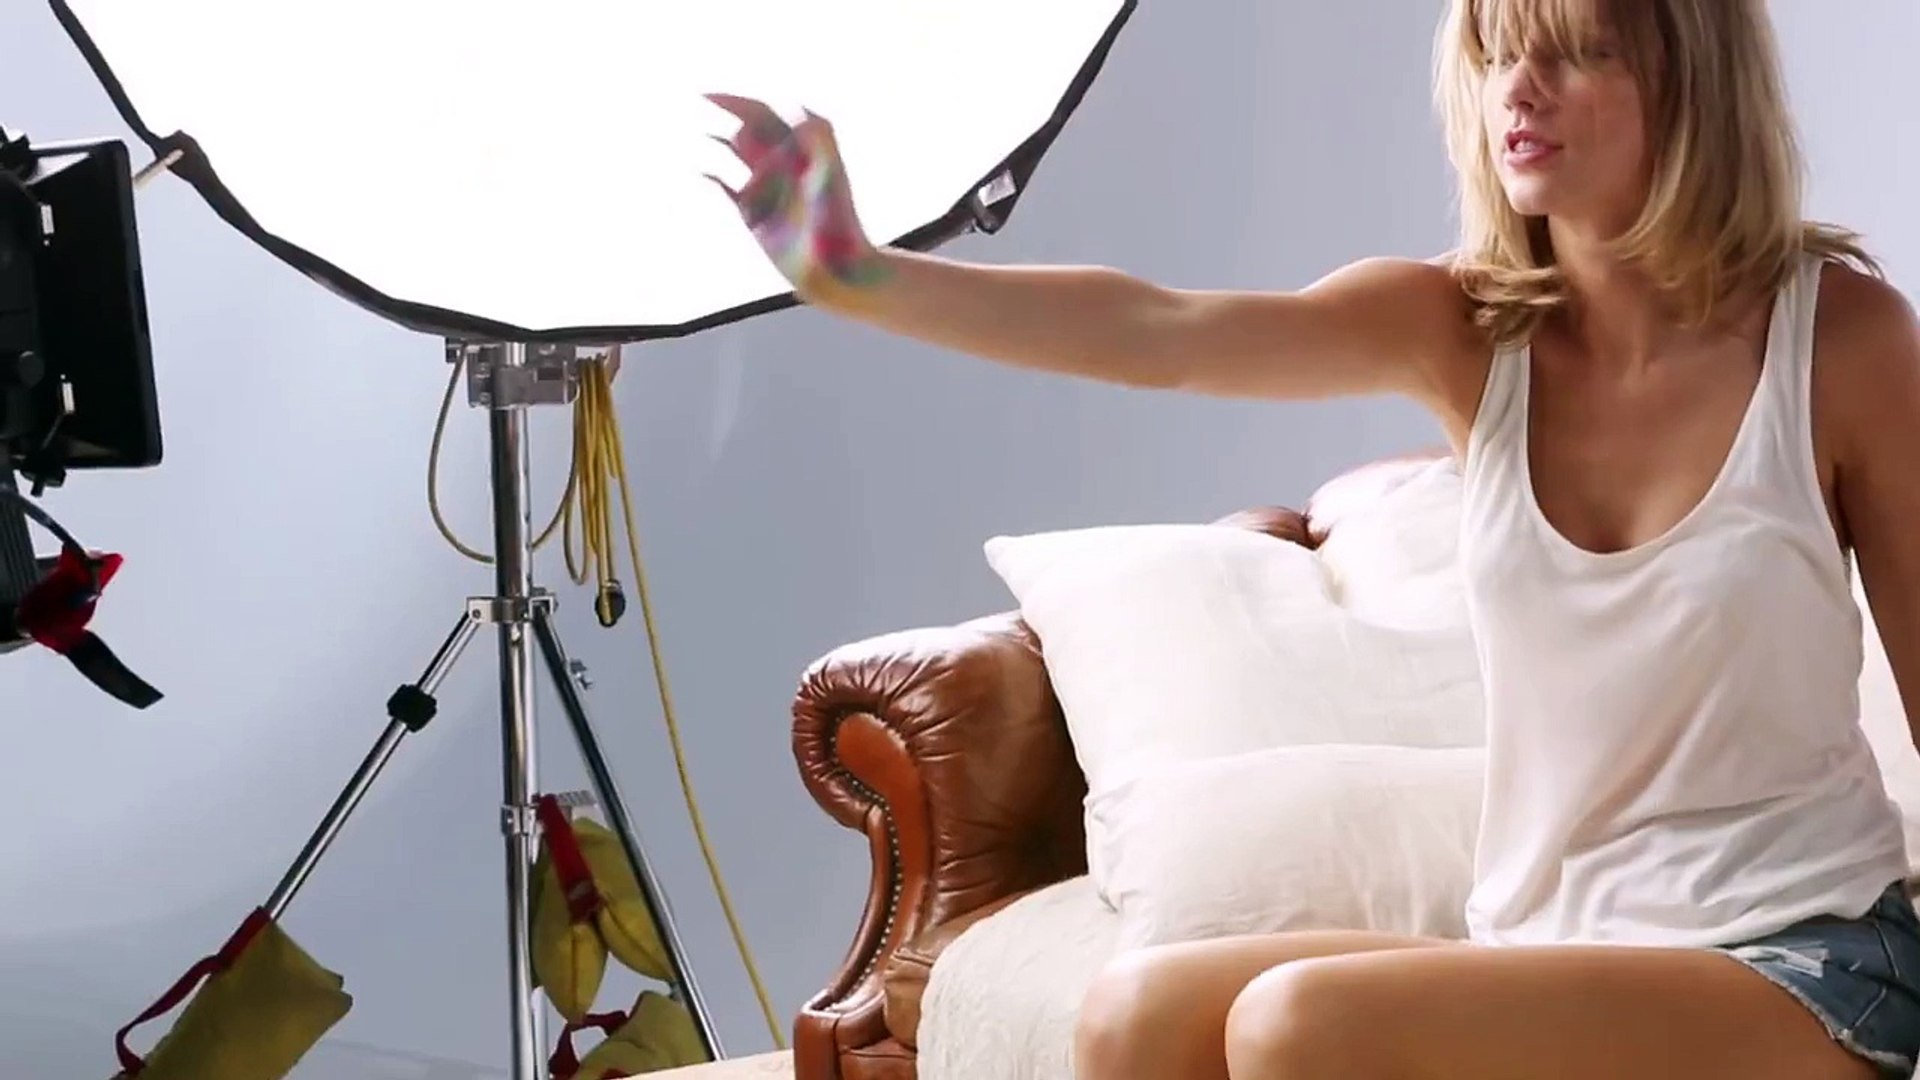 Behind The Fragrance, Taylor Swift Incredible Things featuring Taylor Swift (Behind The Scenes)